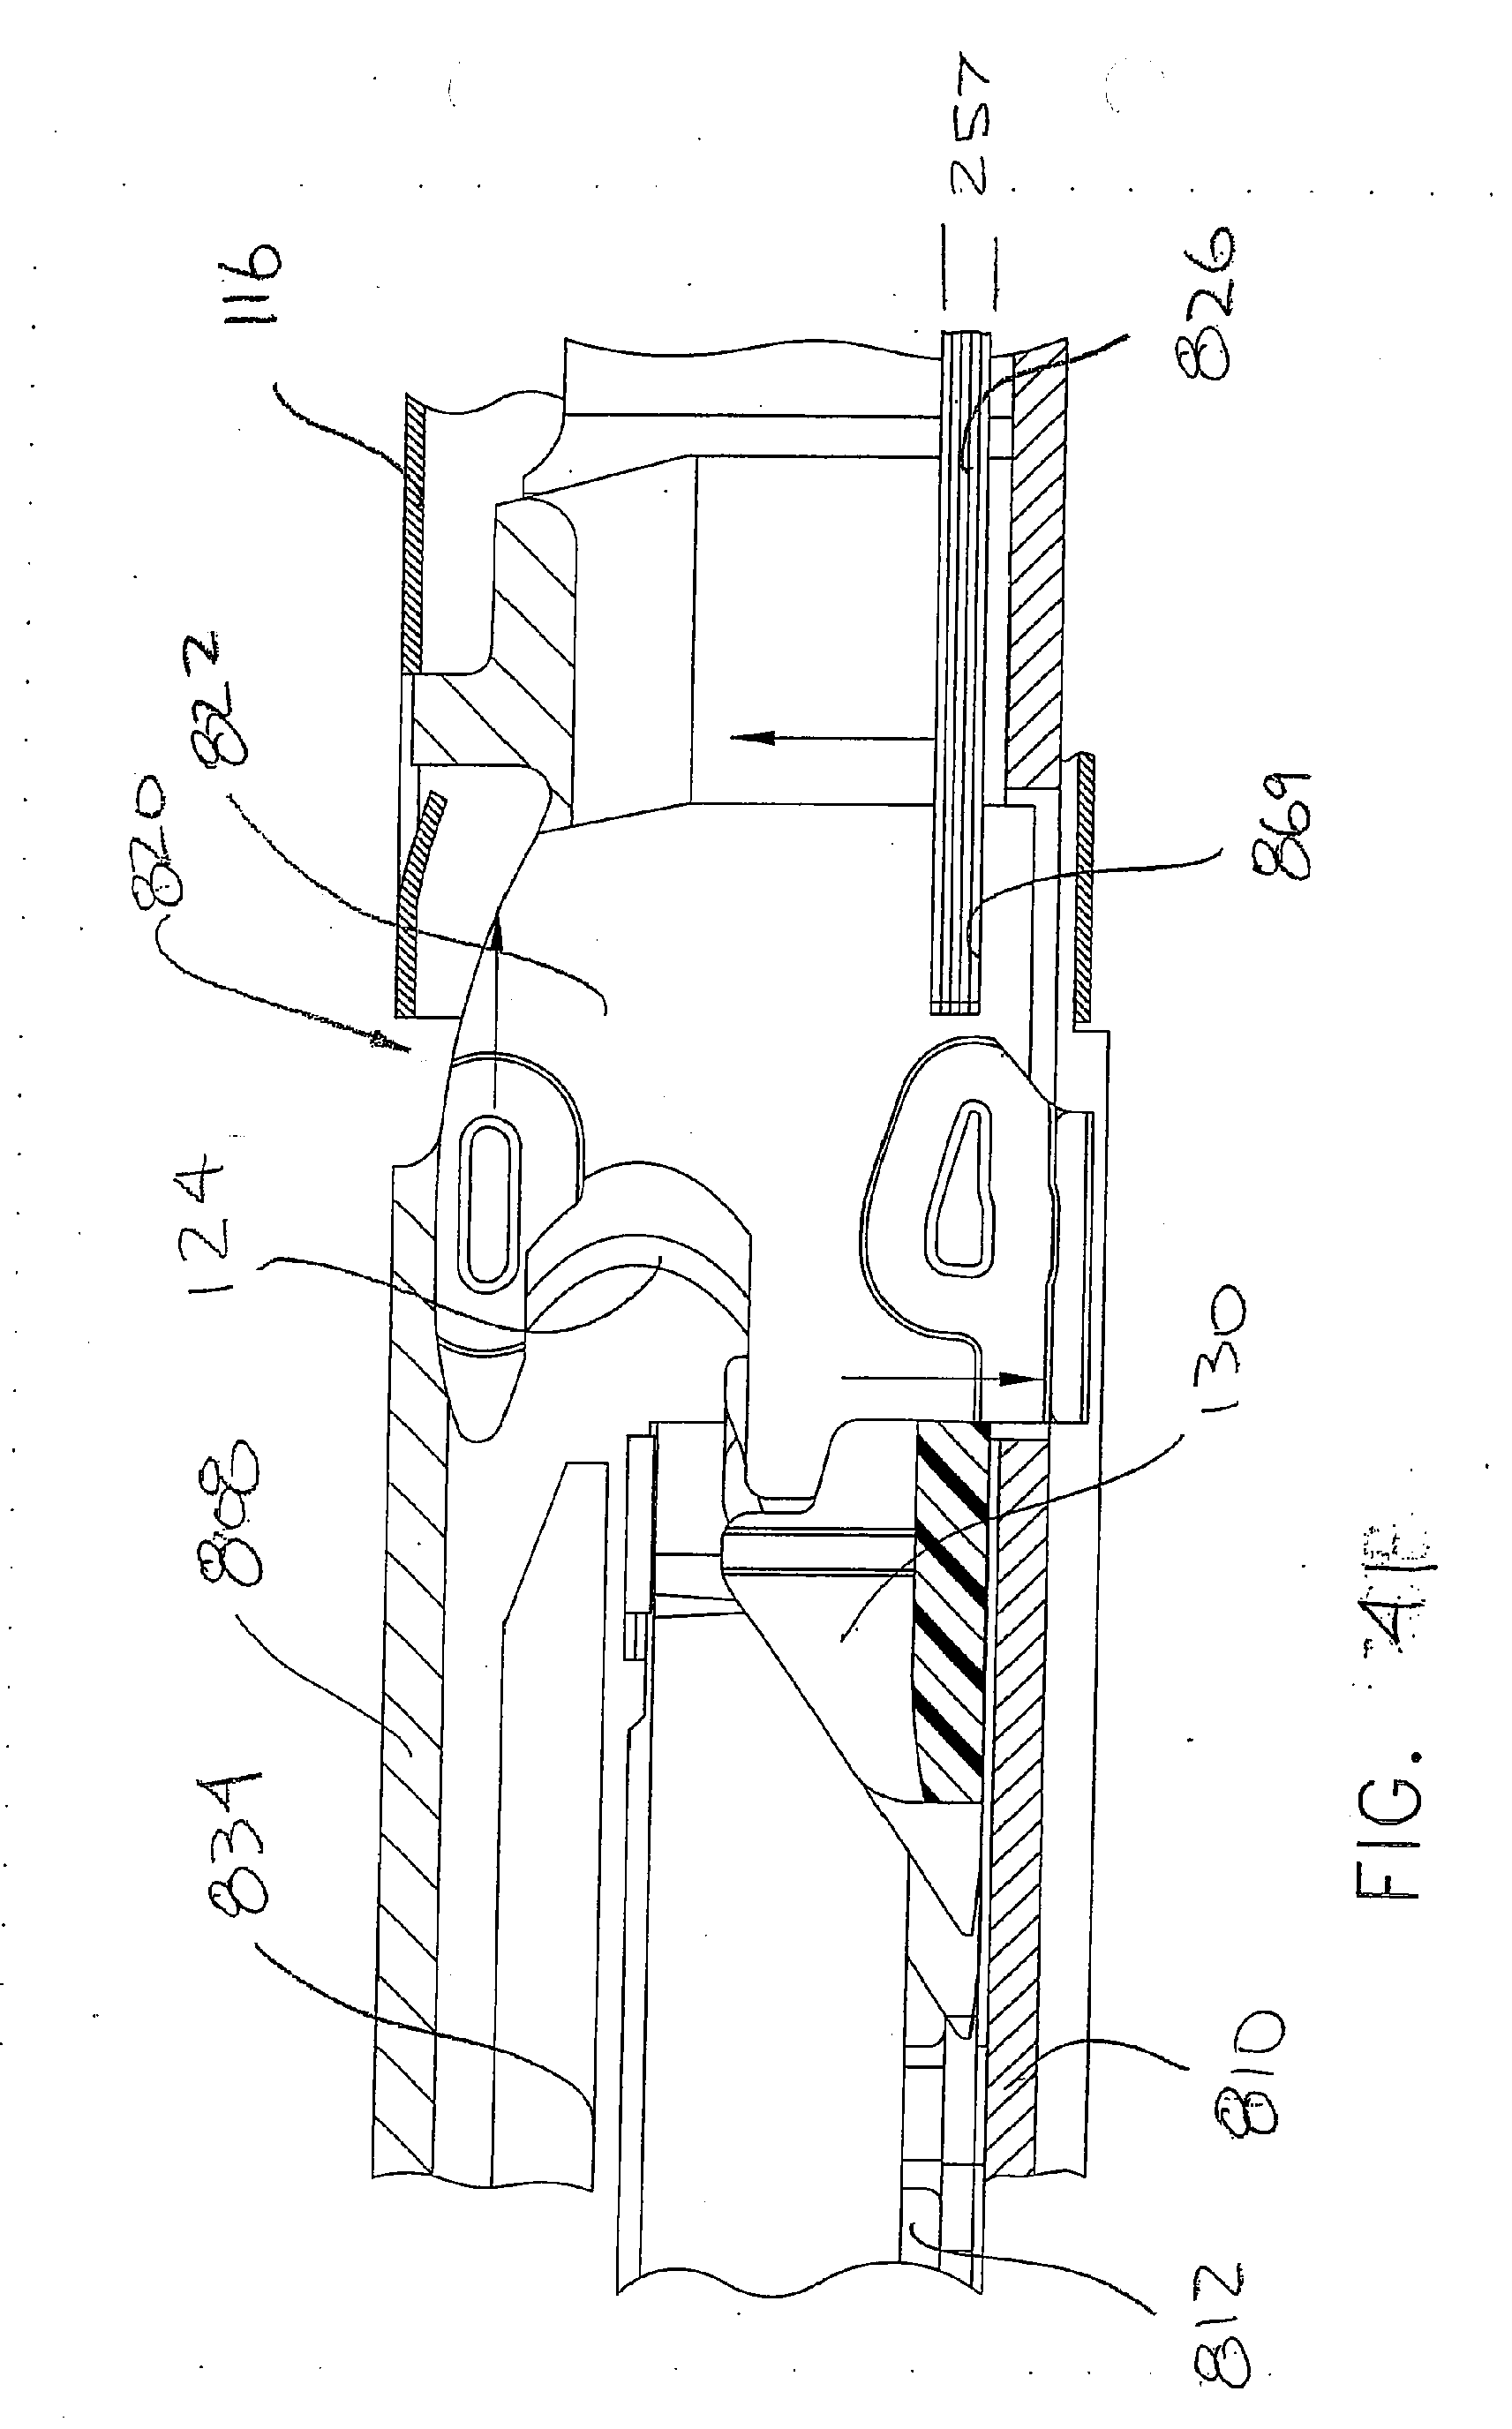 EP2974674A1 - Surgical stapling device with a curved end effector